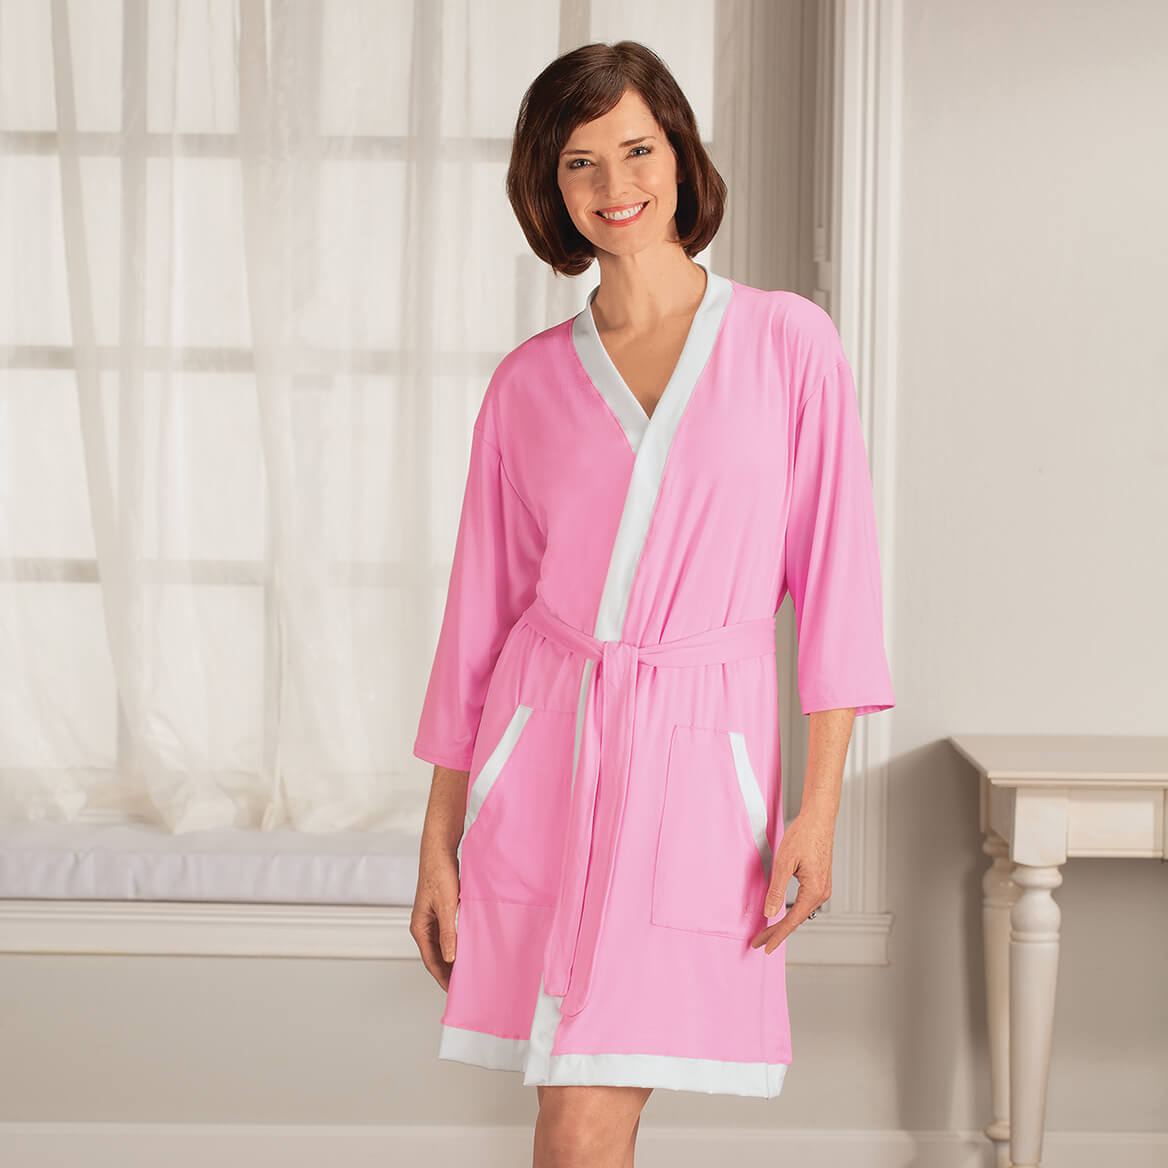 a39f41289bbf Lounge Robe - Bathrobes for Women - Ladies Robes - Miles Kimball